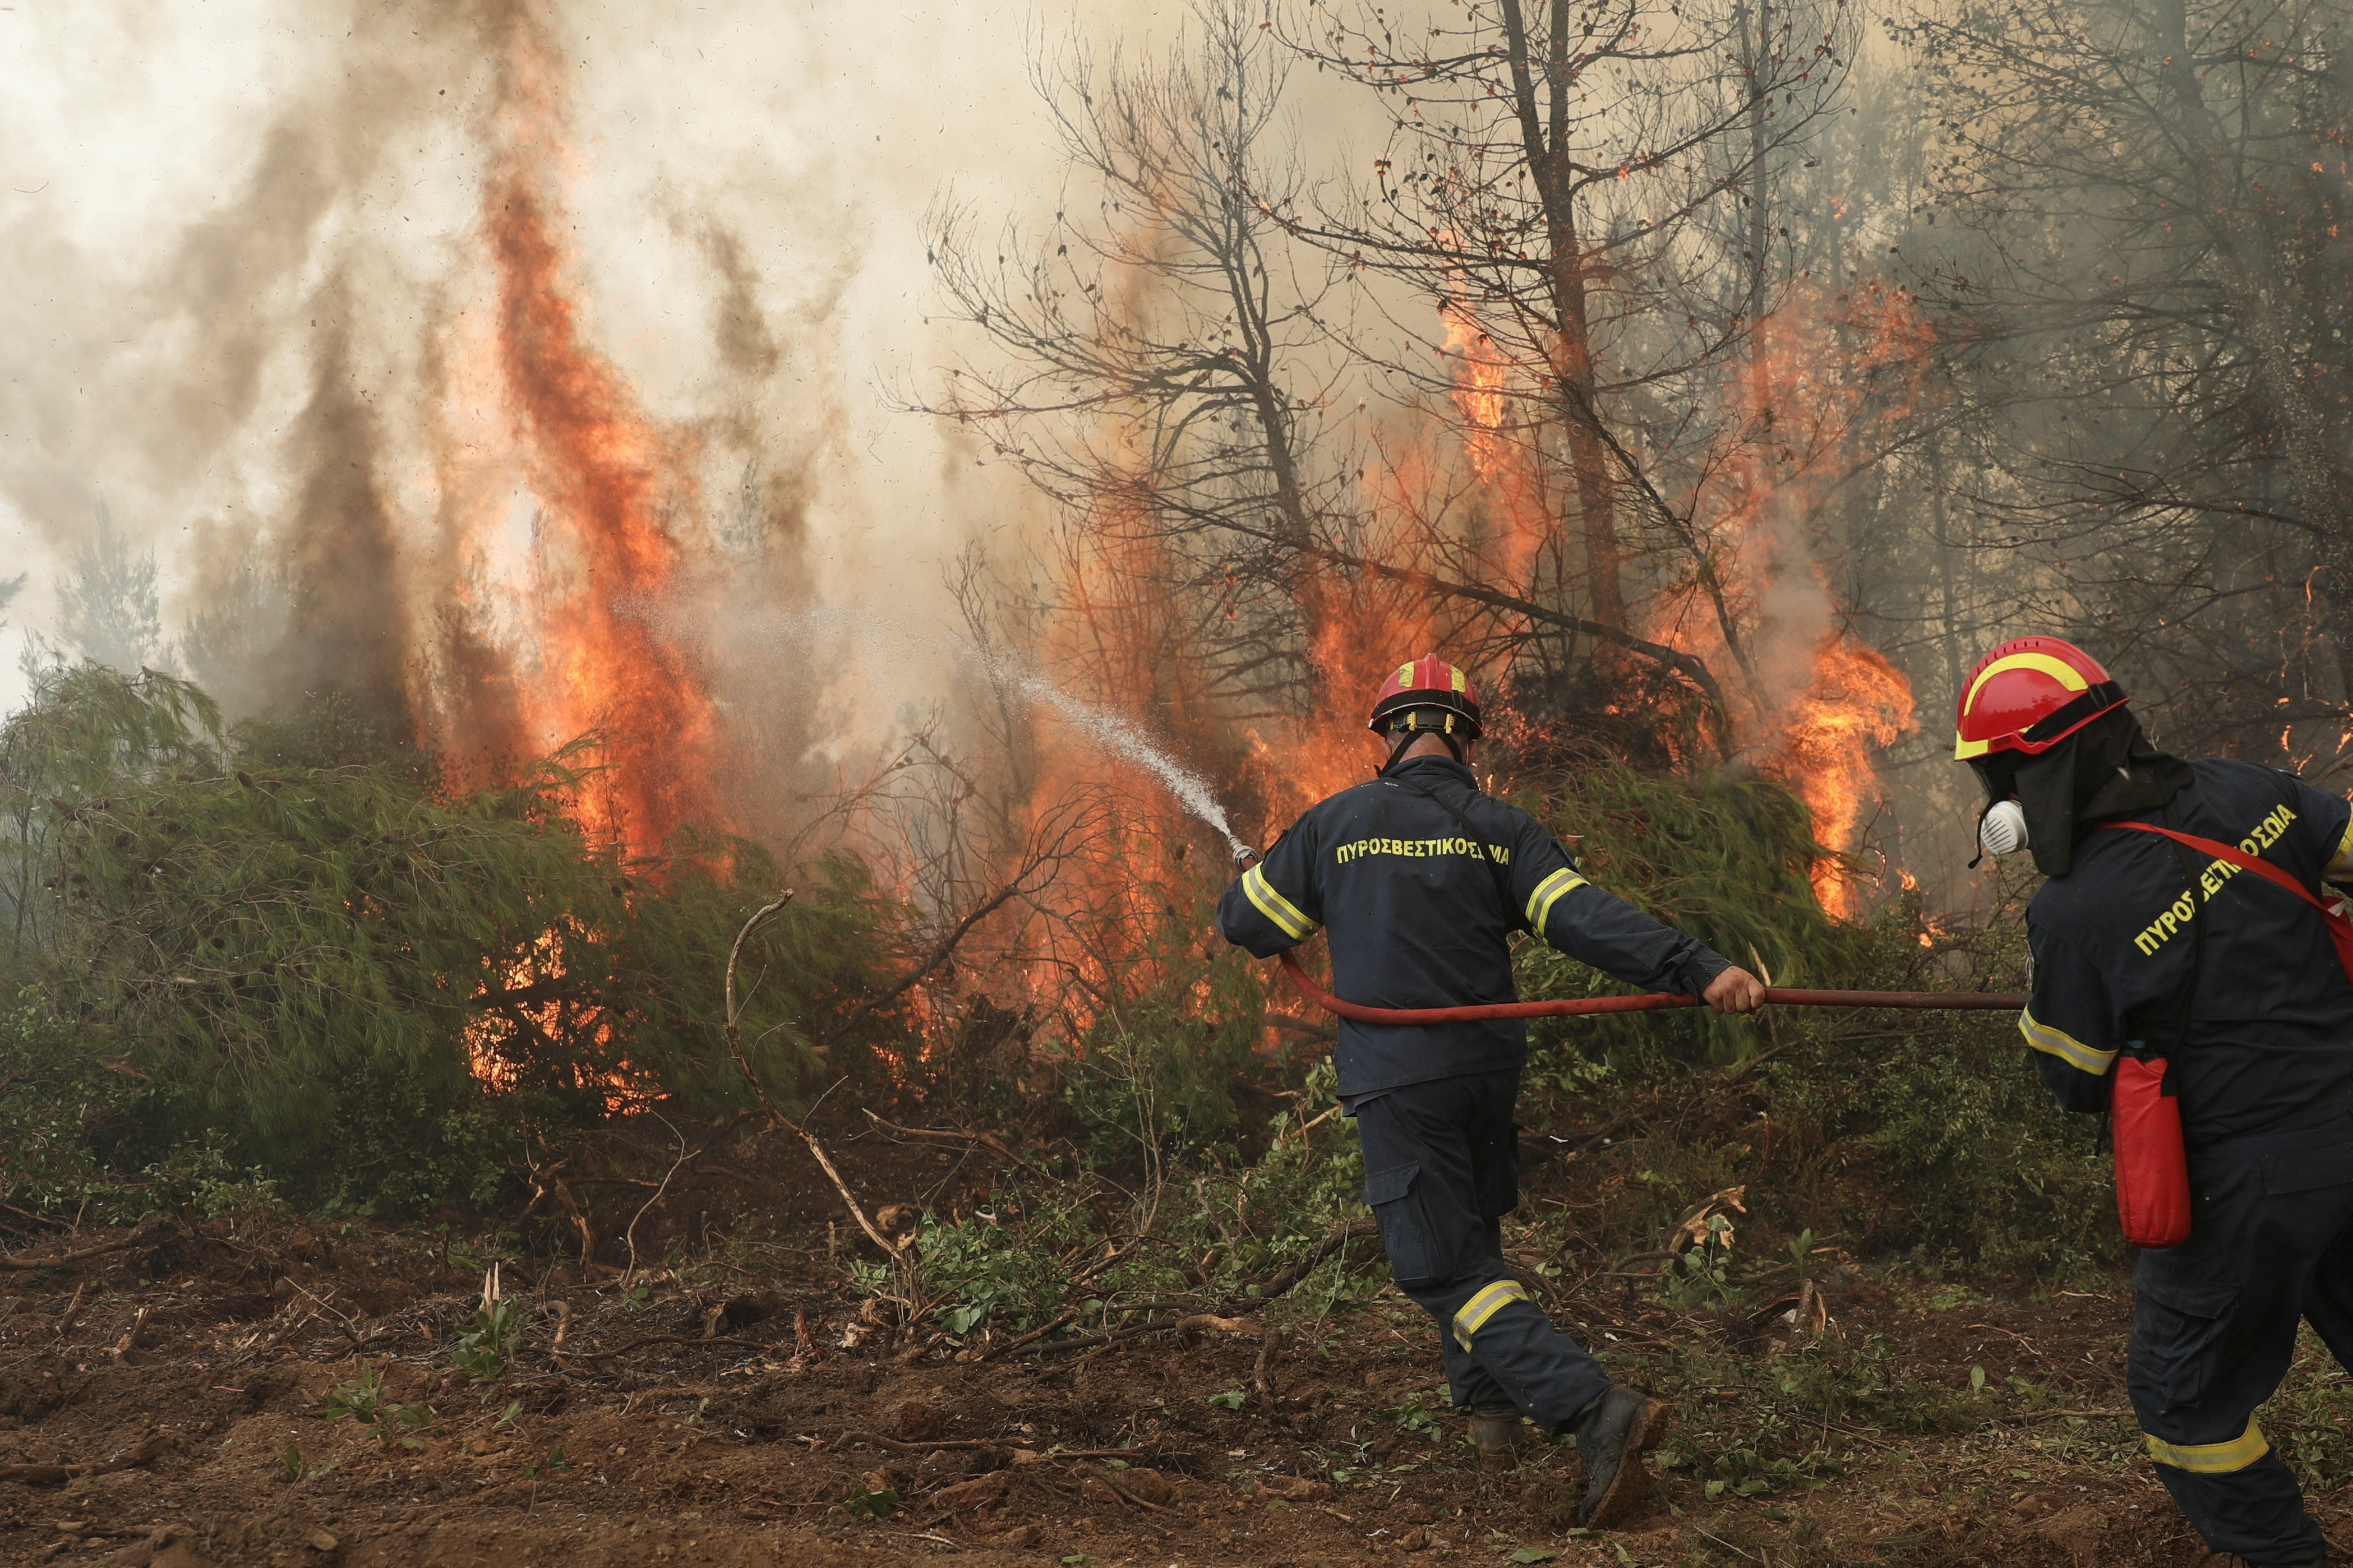 Firefighters try to extinguish a fire in the village of Avgaria, on the island of Evia, Greece, August 10, 2021.